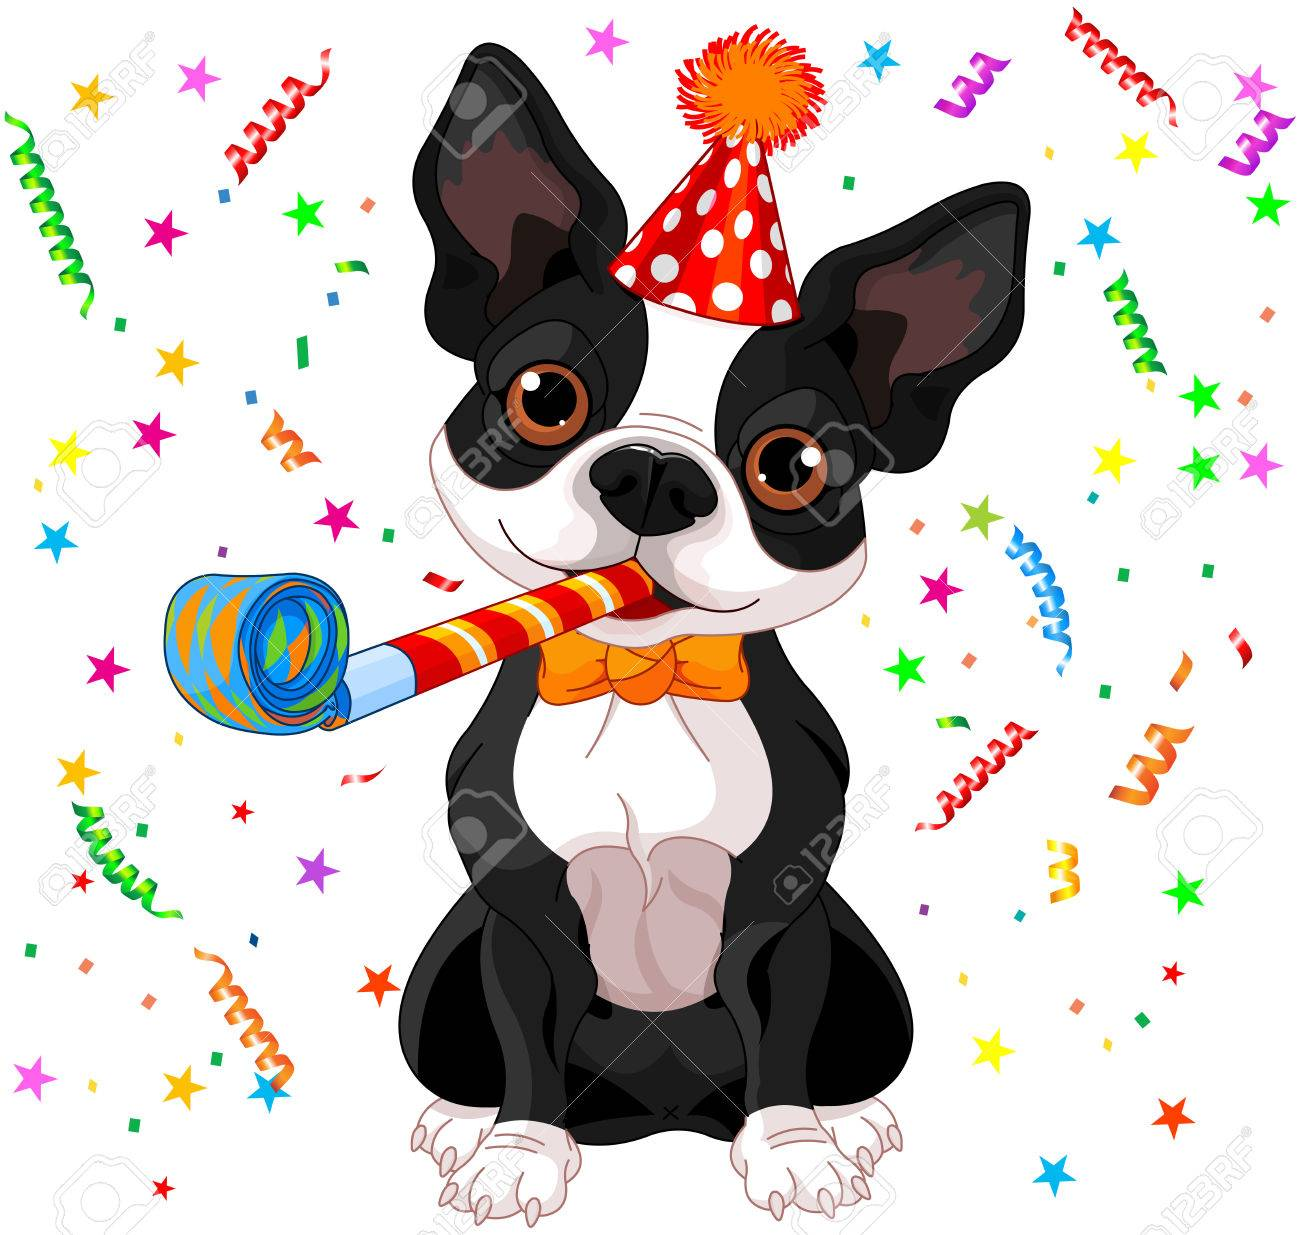 Effets du collier électrique sur les humains - Page 4 35588778-illustration-of-cute-boston-terrier-celebrating